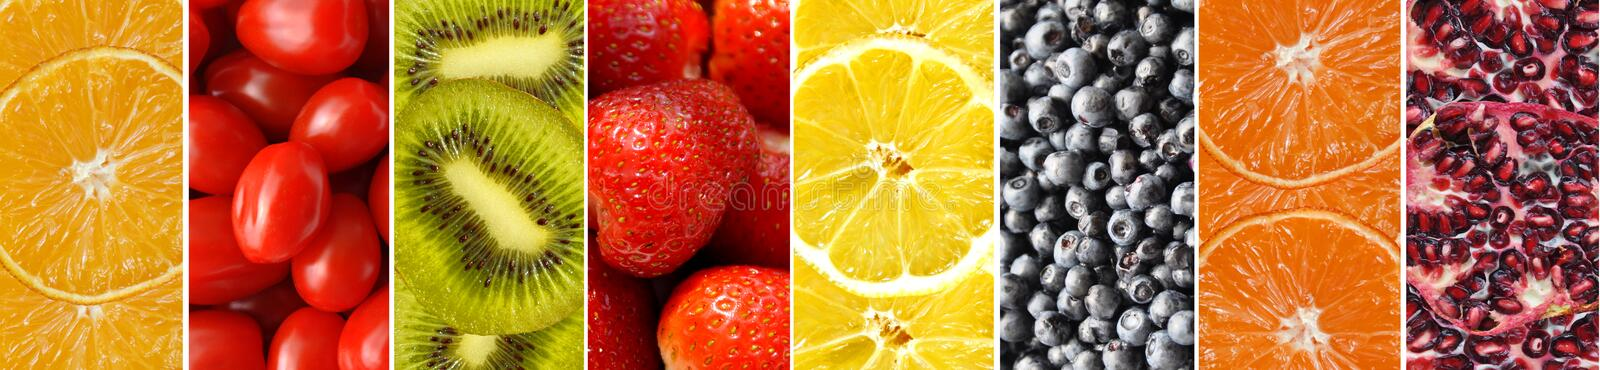 Collection different fruits, berries and vegetables stock photo